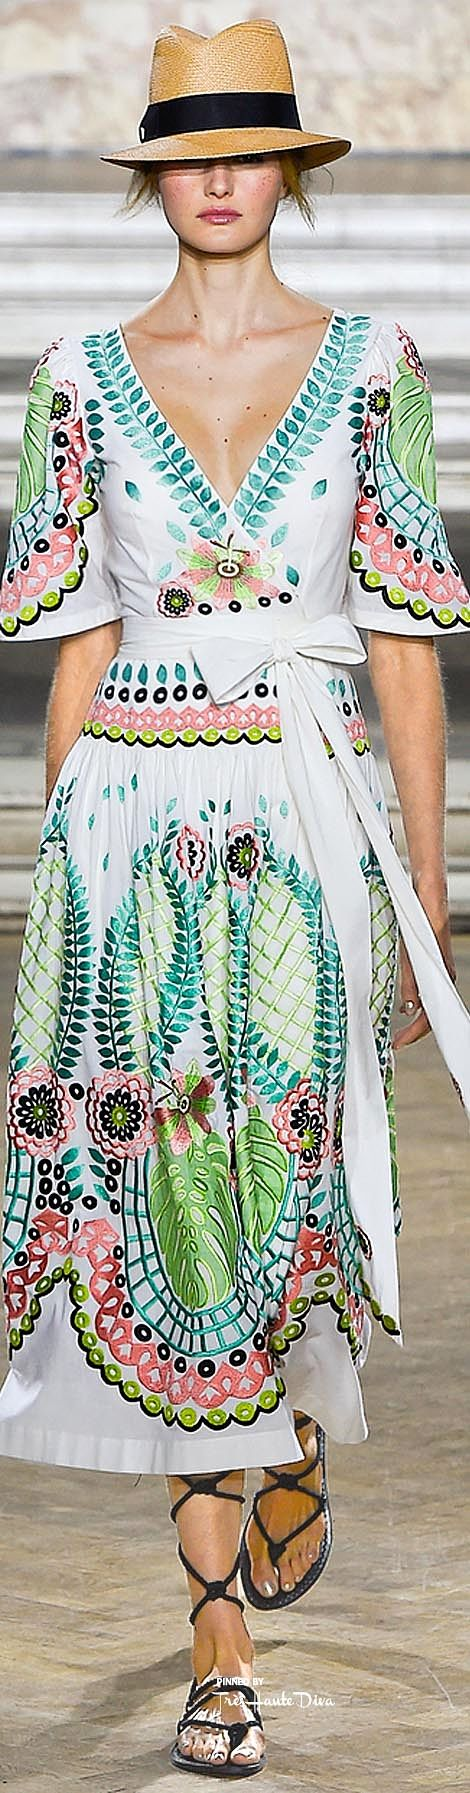 best images about embroidered on pinterest